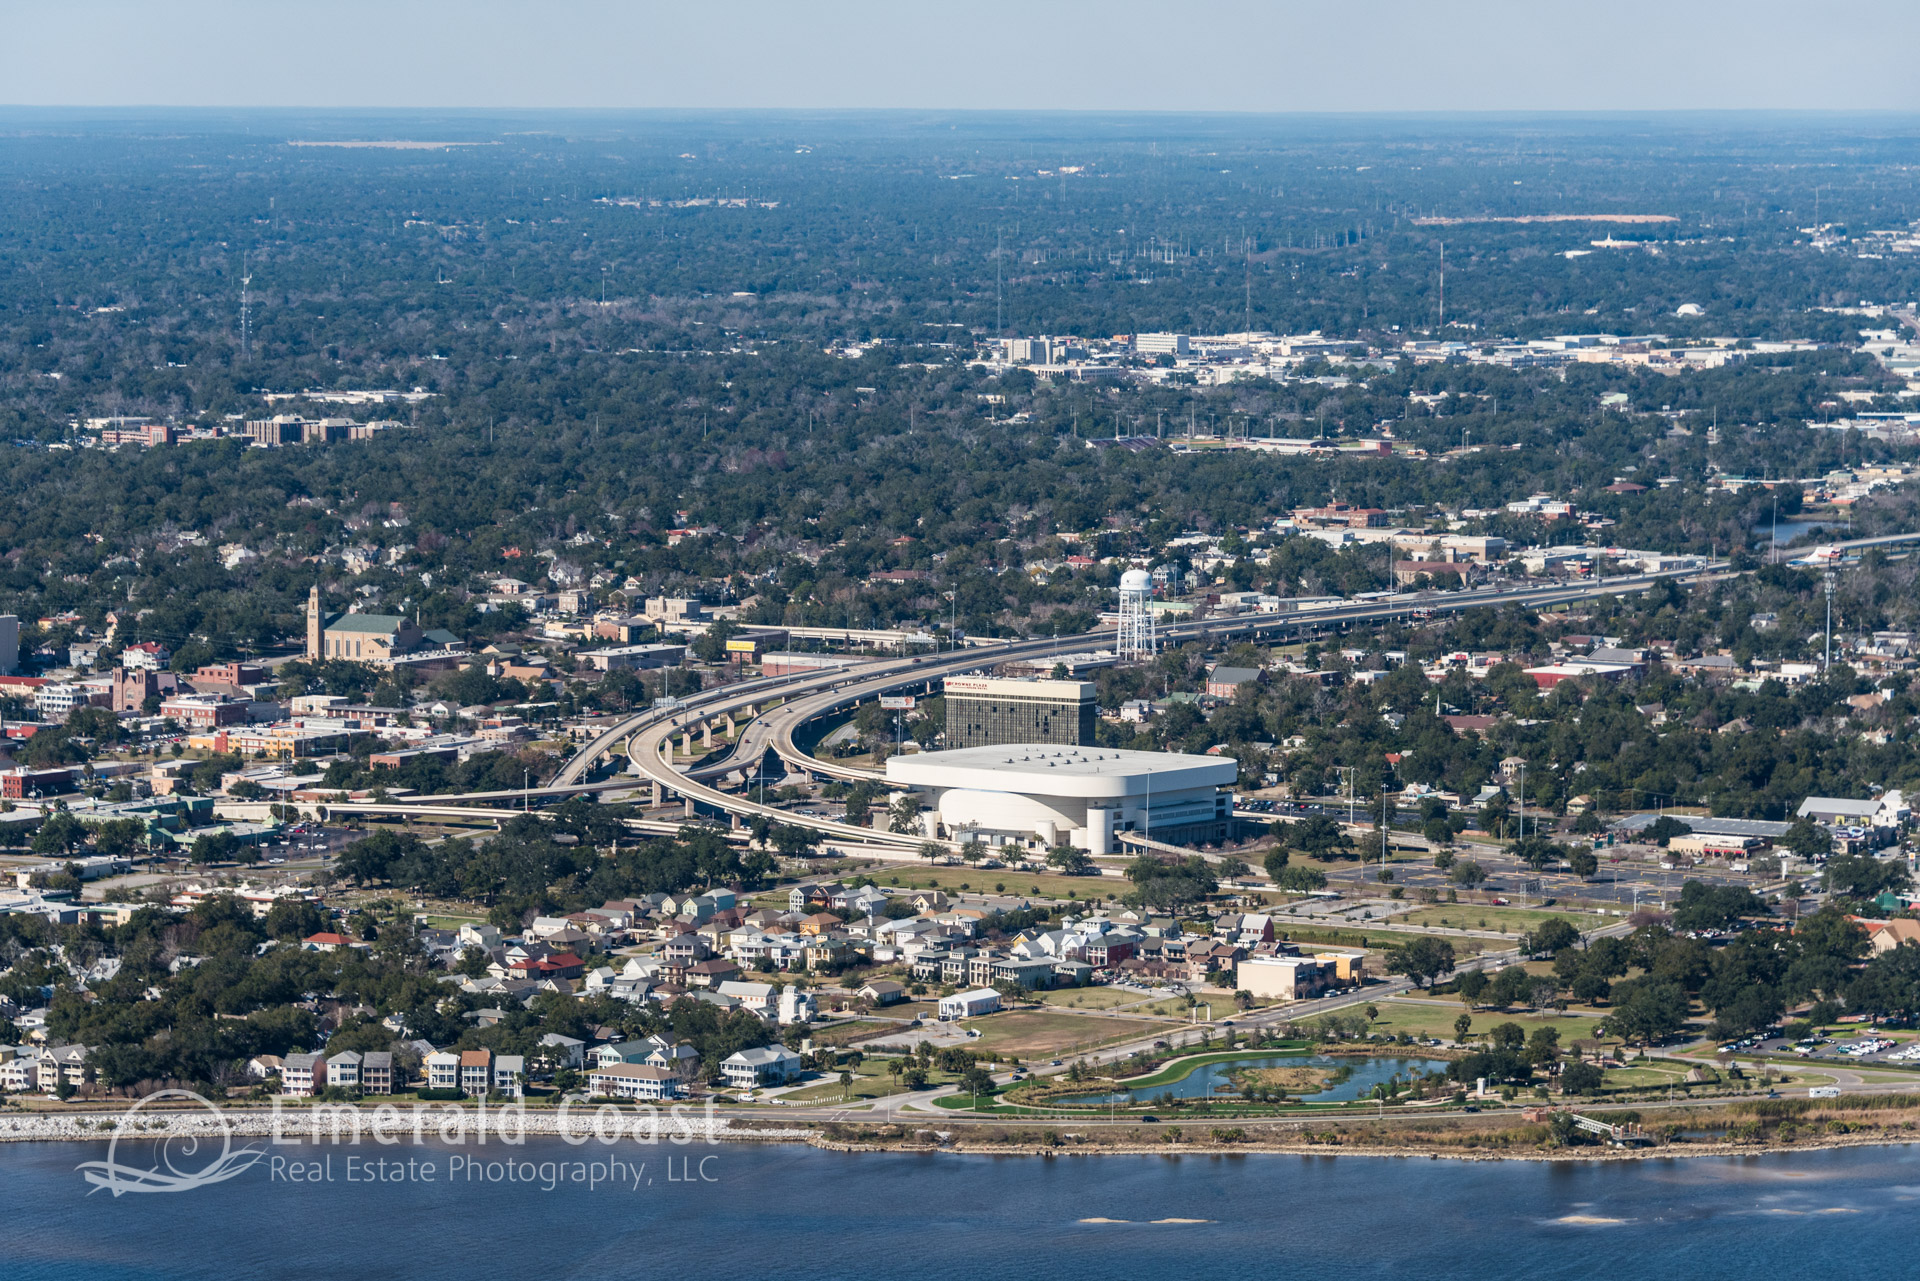 aerial view of Pensacola Bay Center